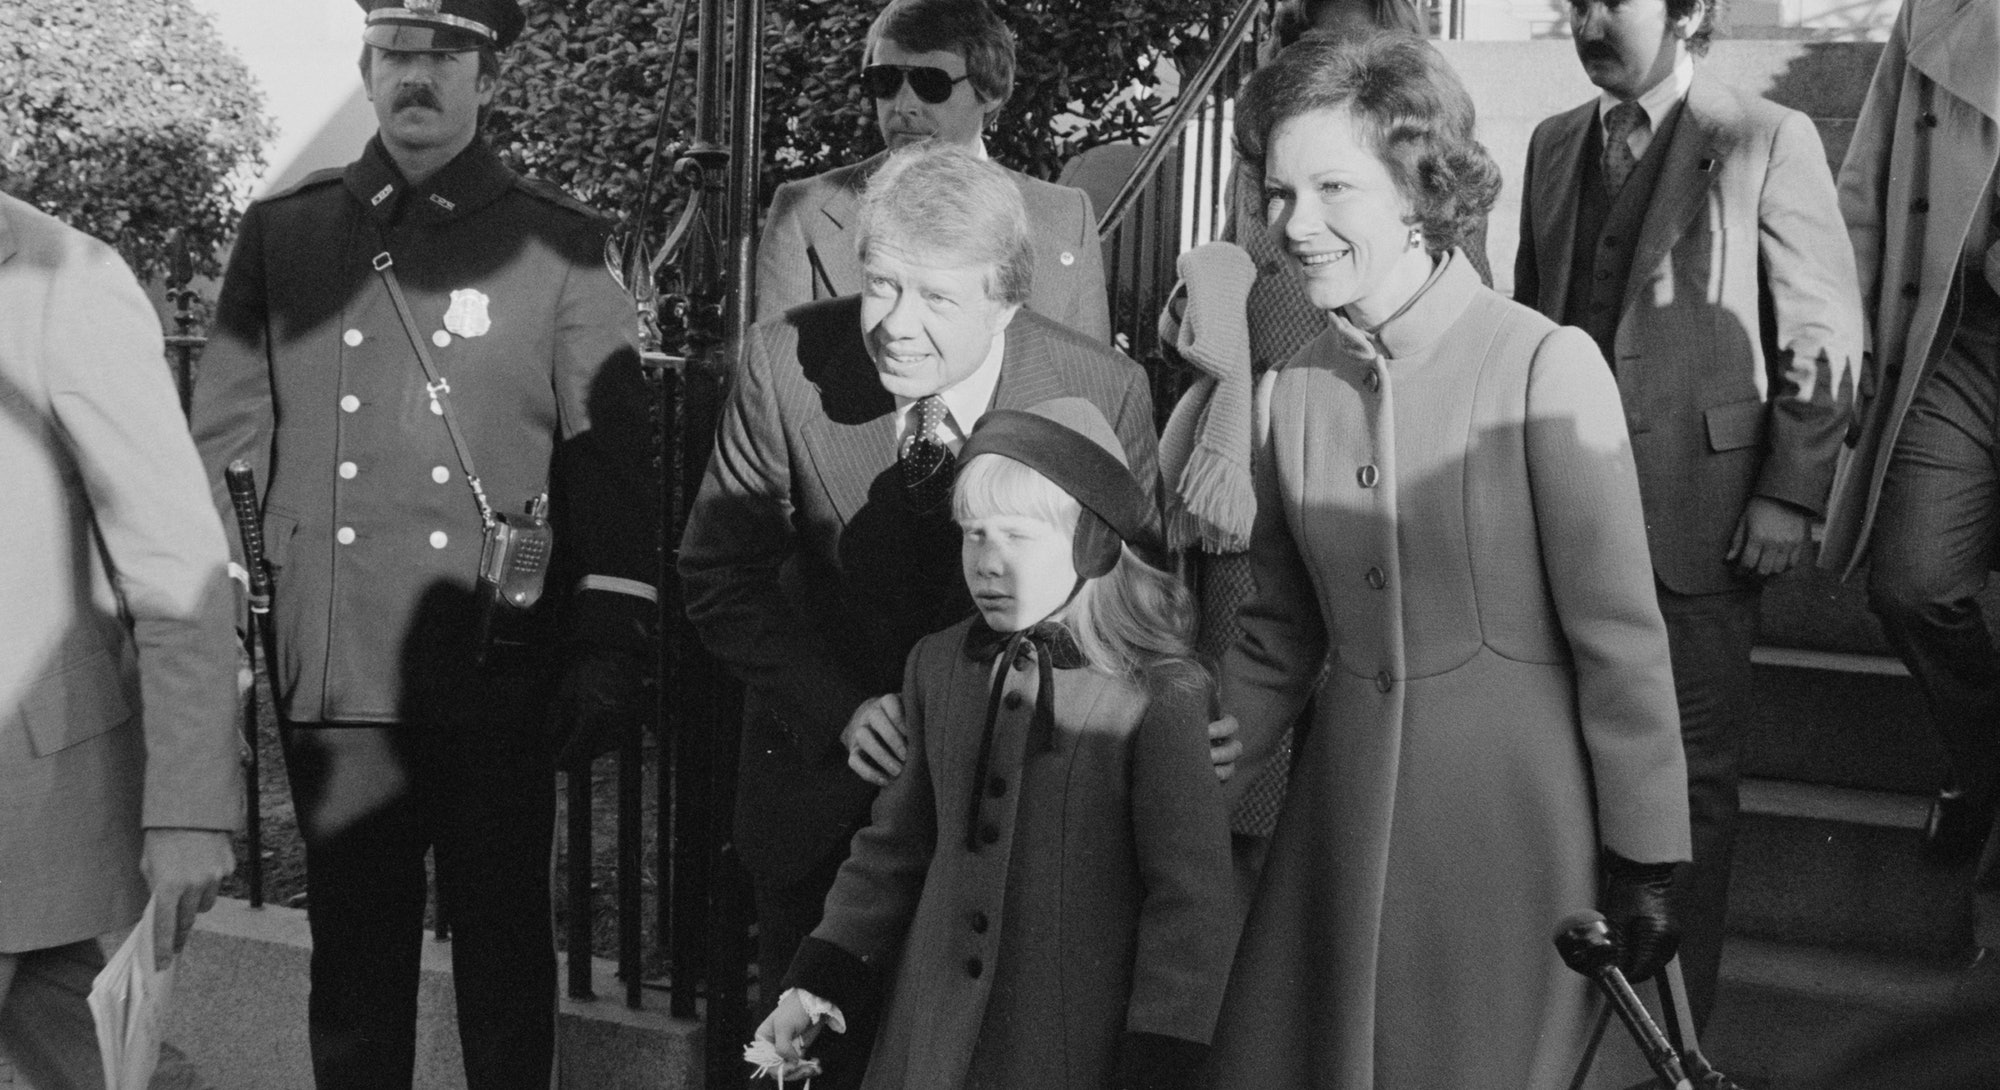 Jimmy Carter arrives to his inauguration with wife Rosalynn Carter and daughter Amy Carter.